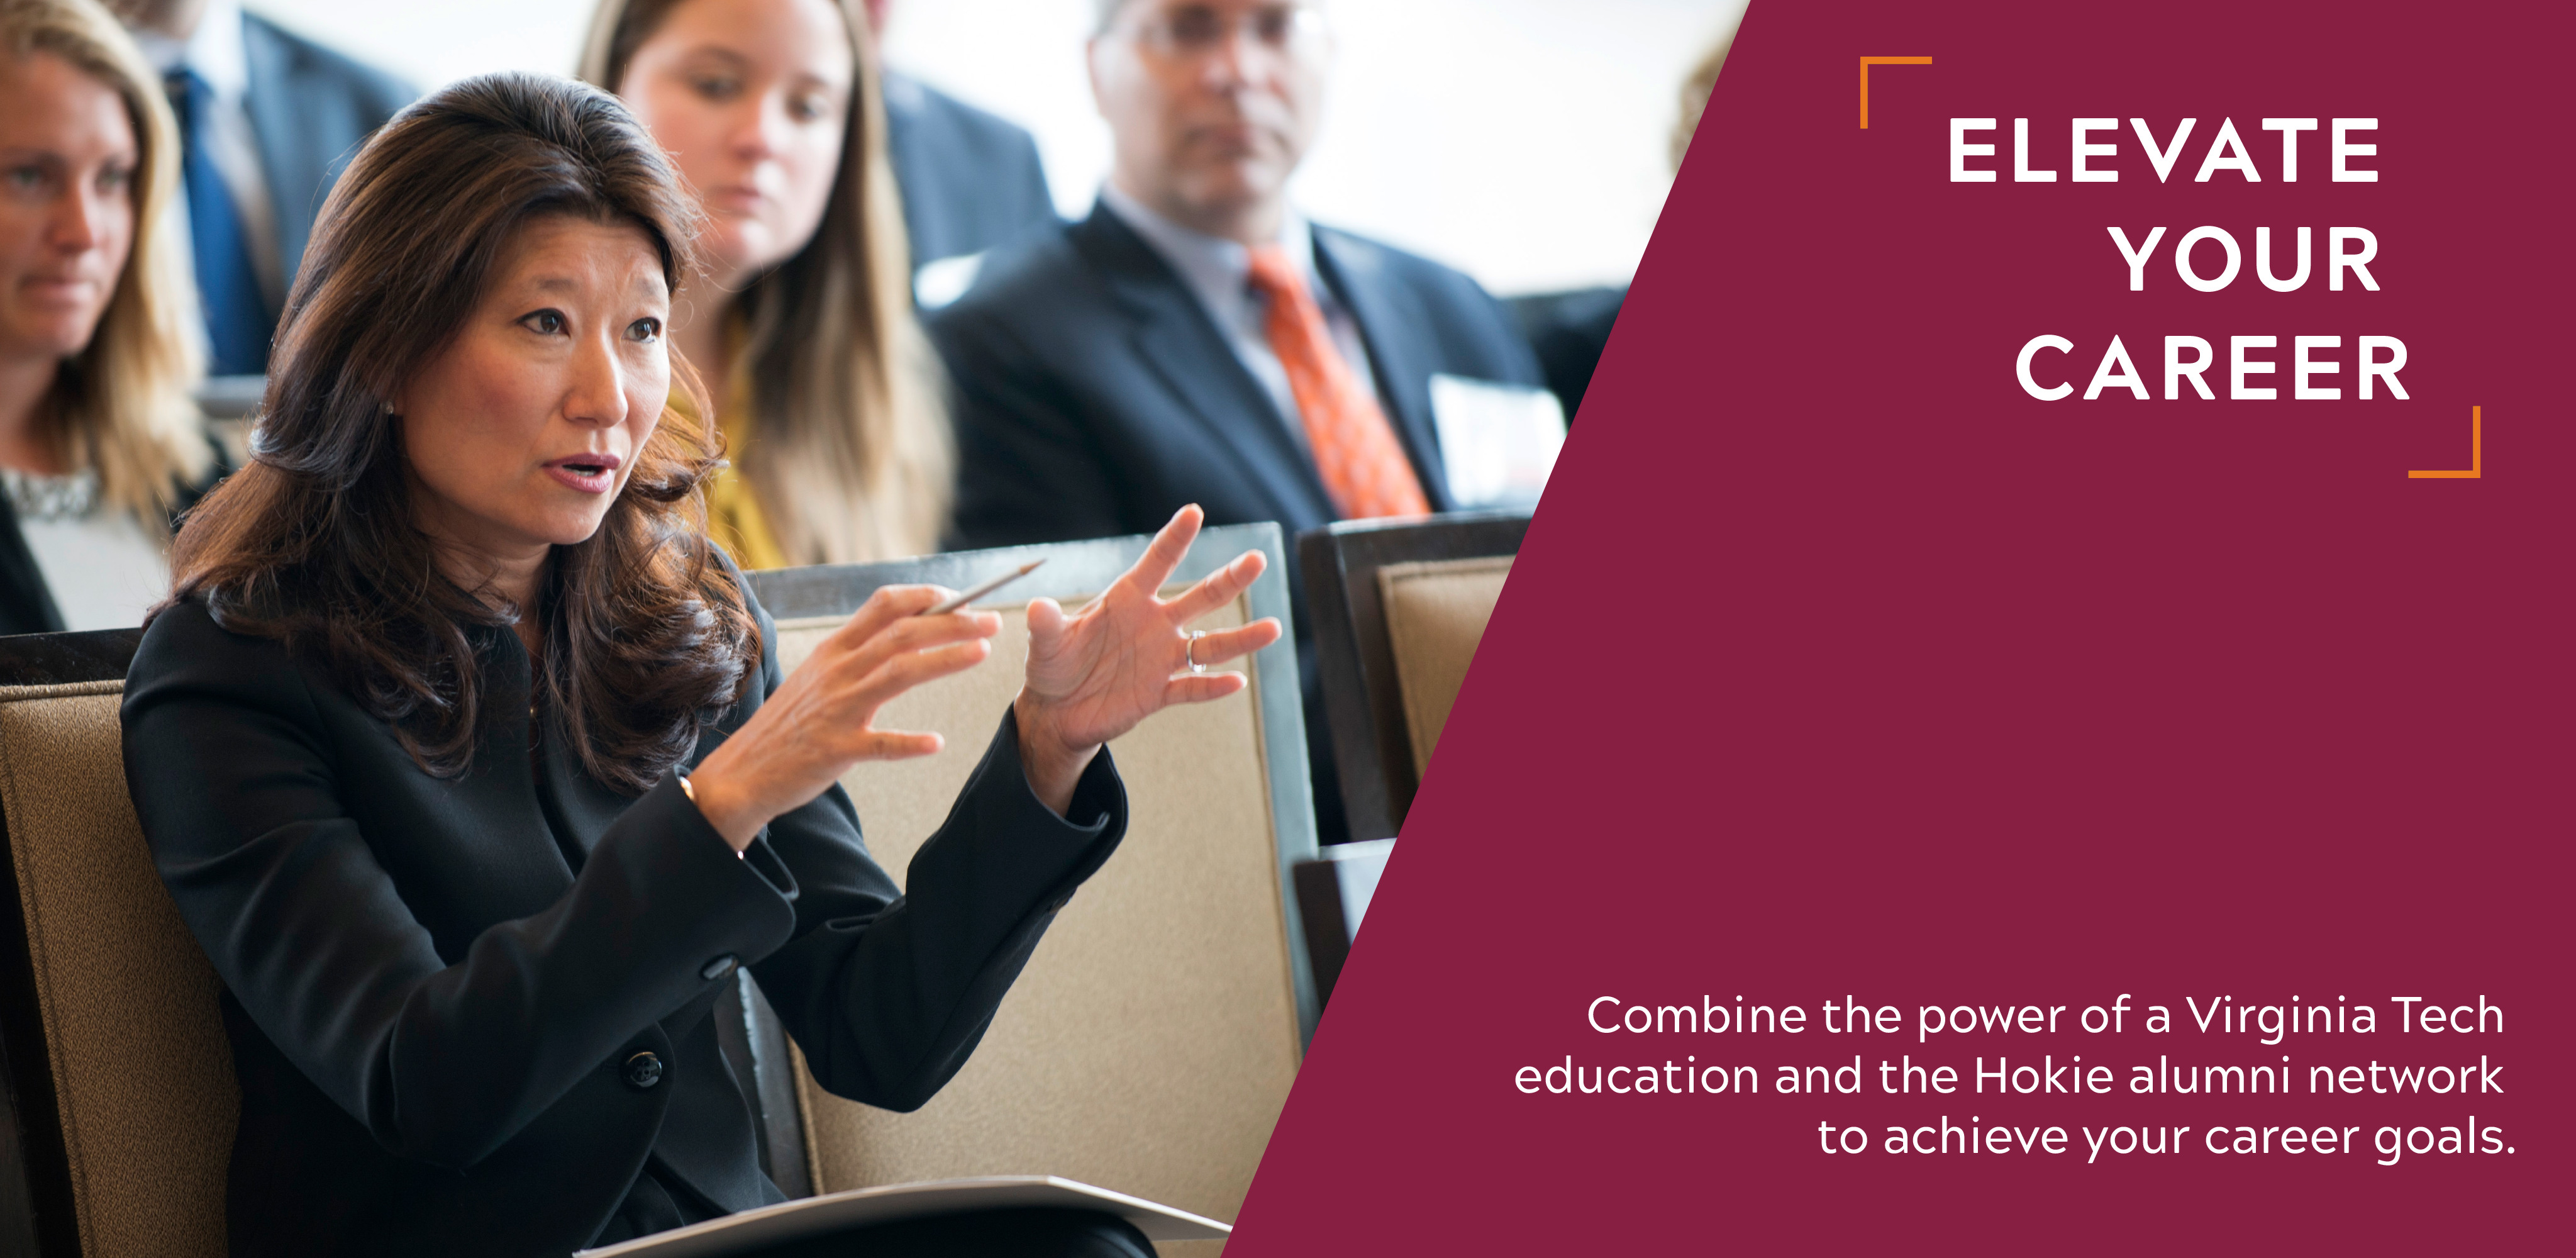 Combine the power of a Virginia Tech education and the Hokie alumni network to achieve your career goals.